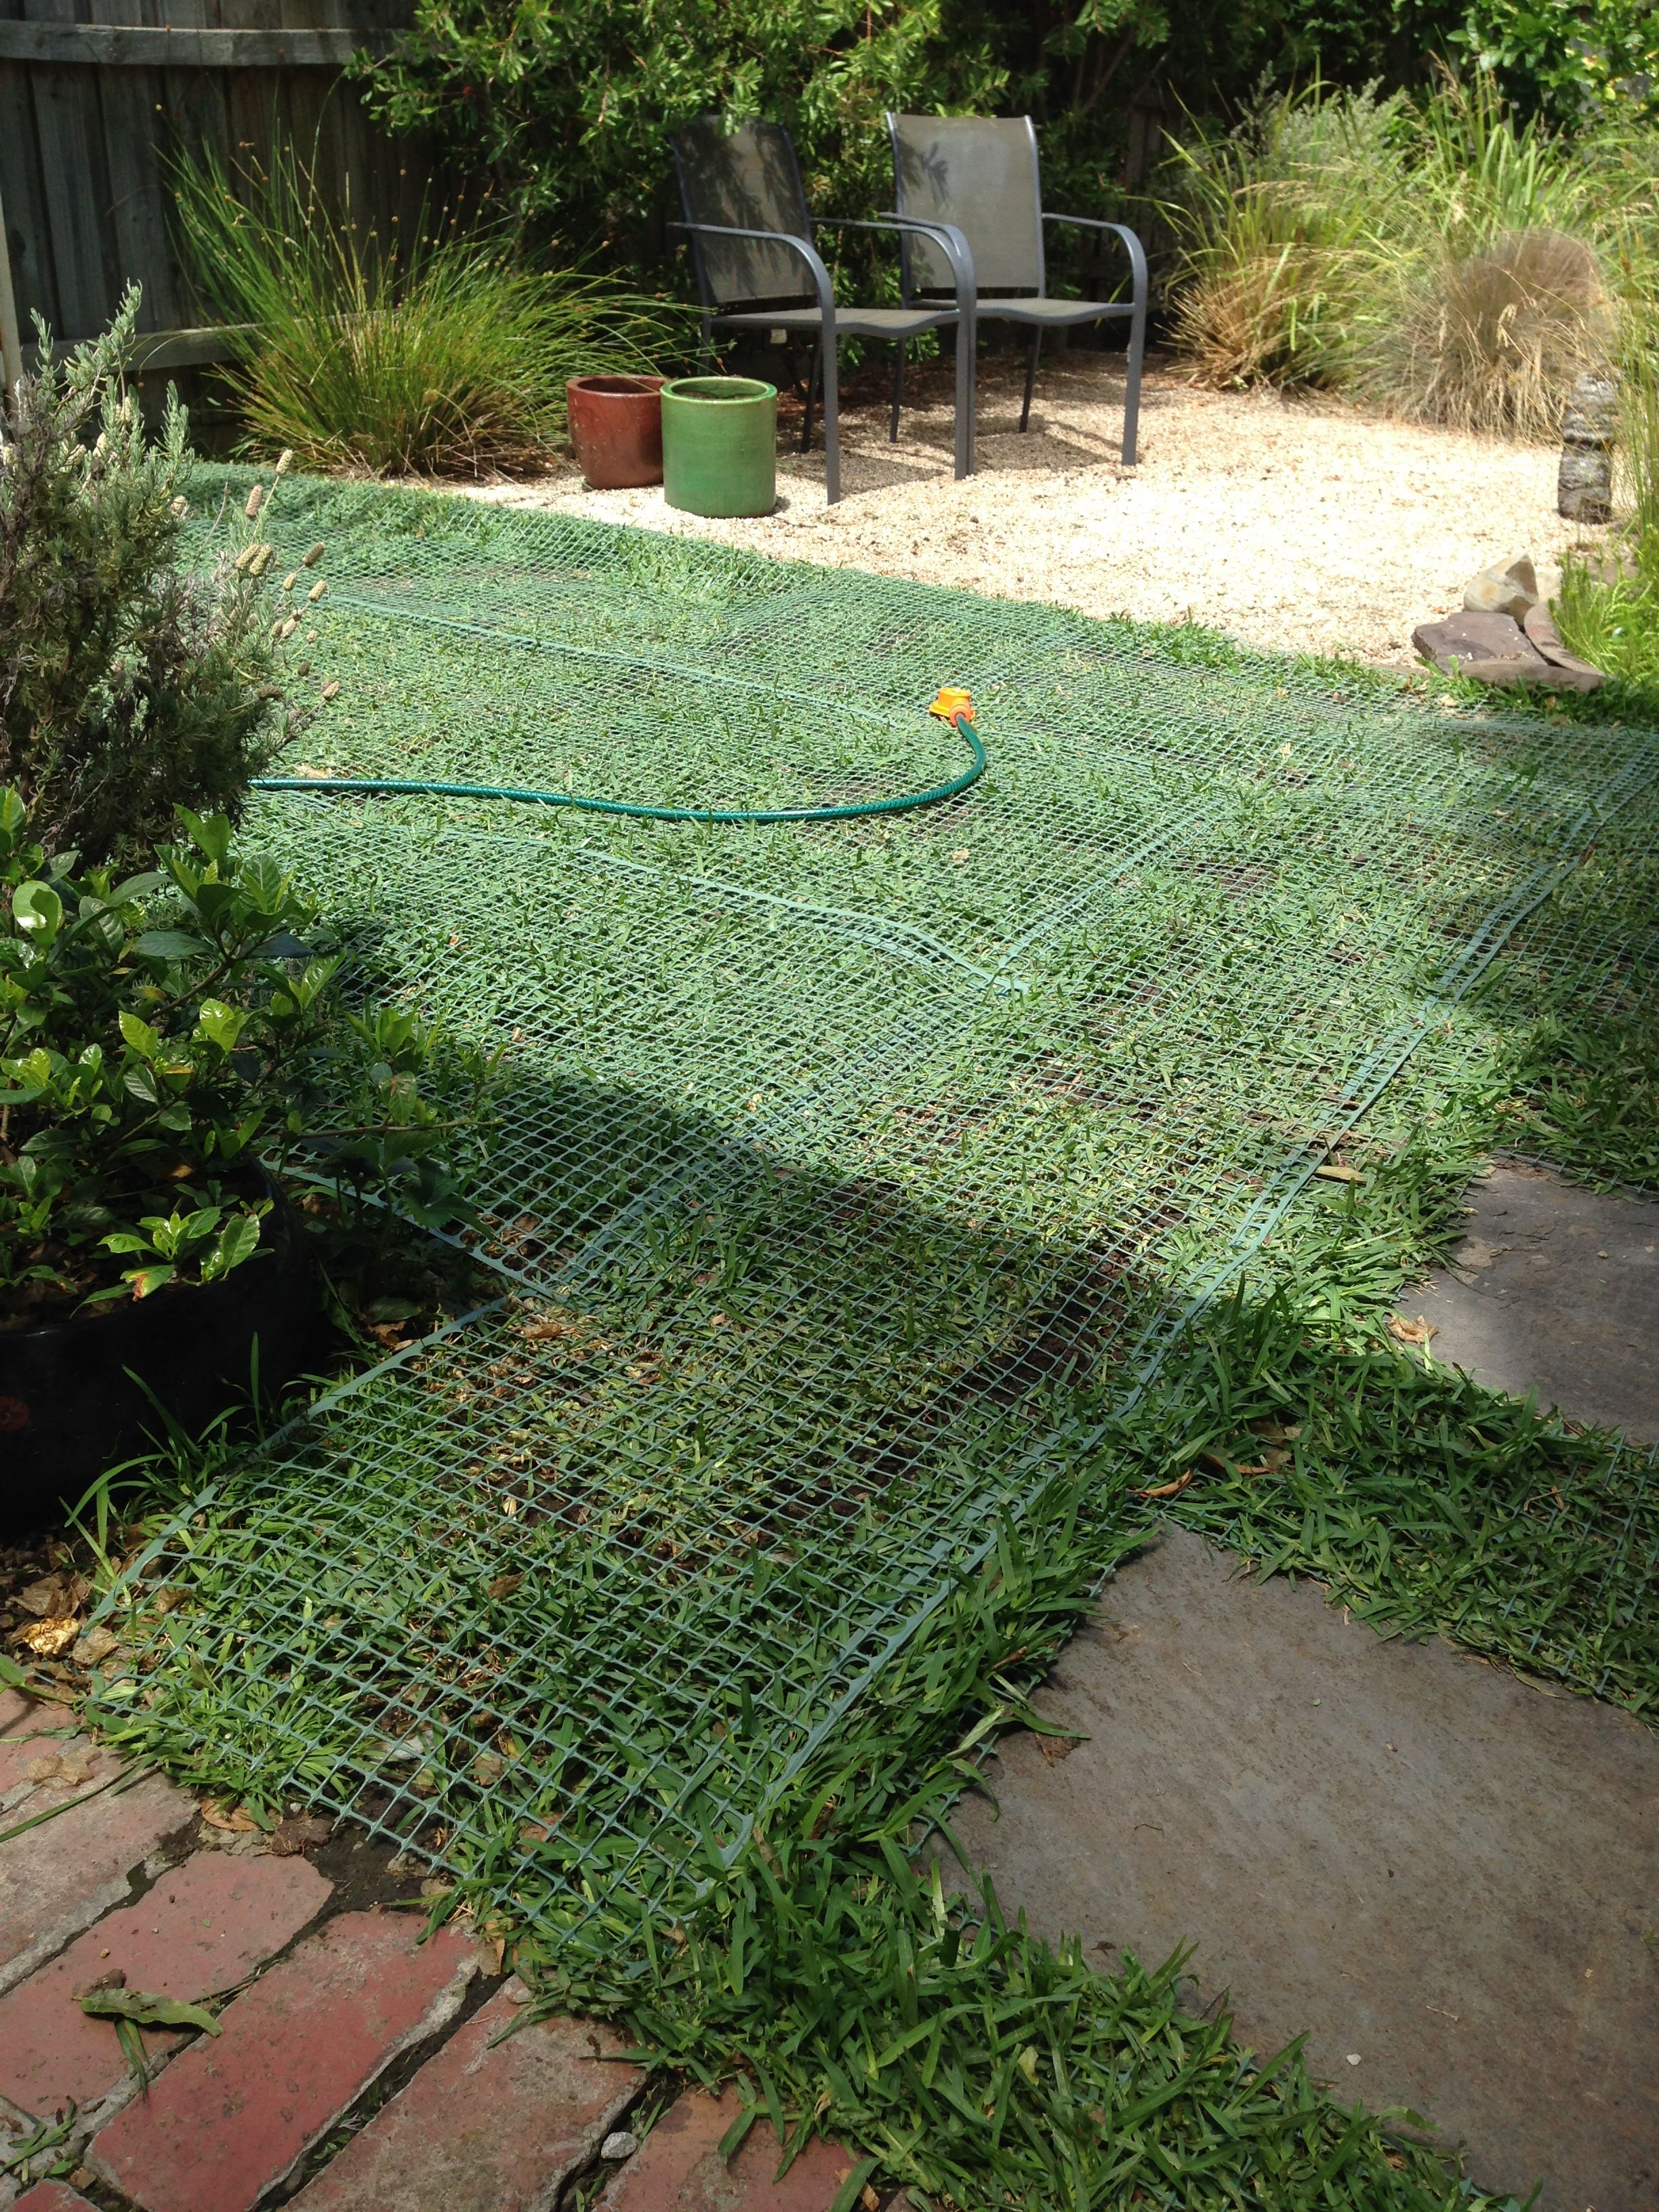 Dog proofing that precious grass! Back gardens